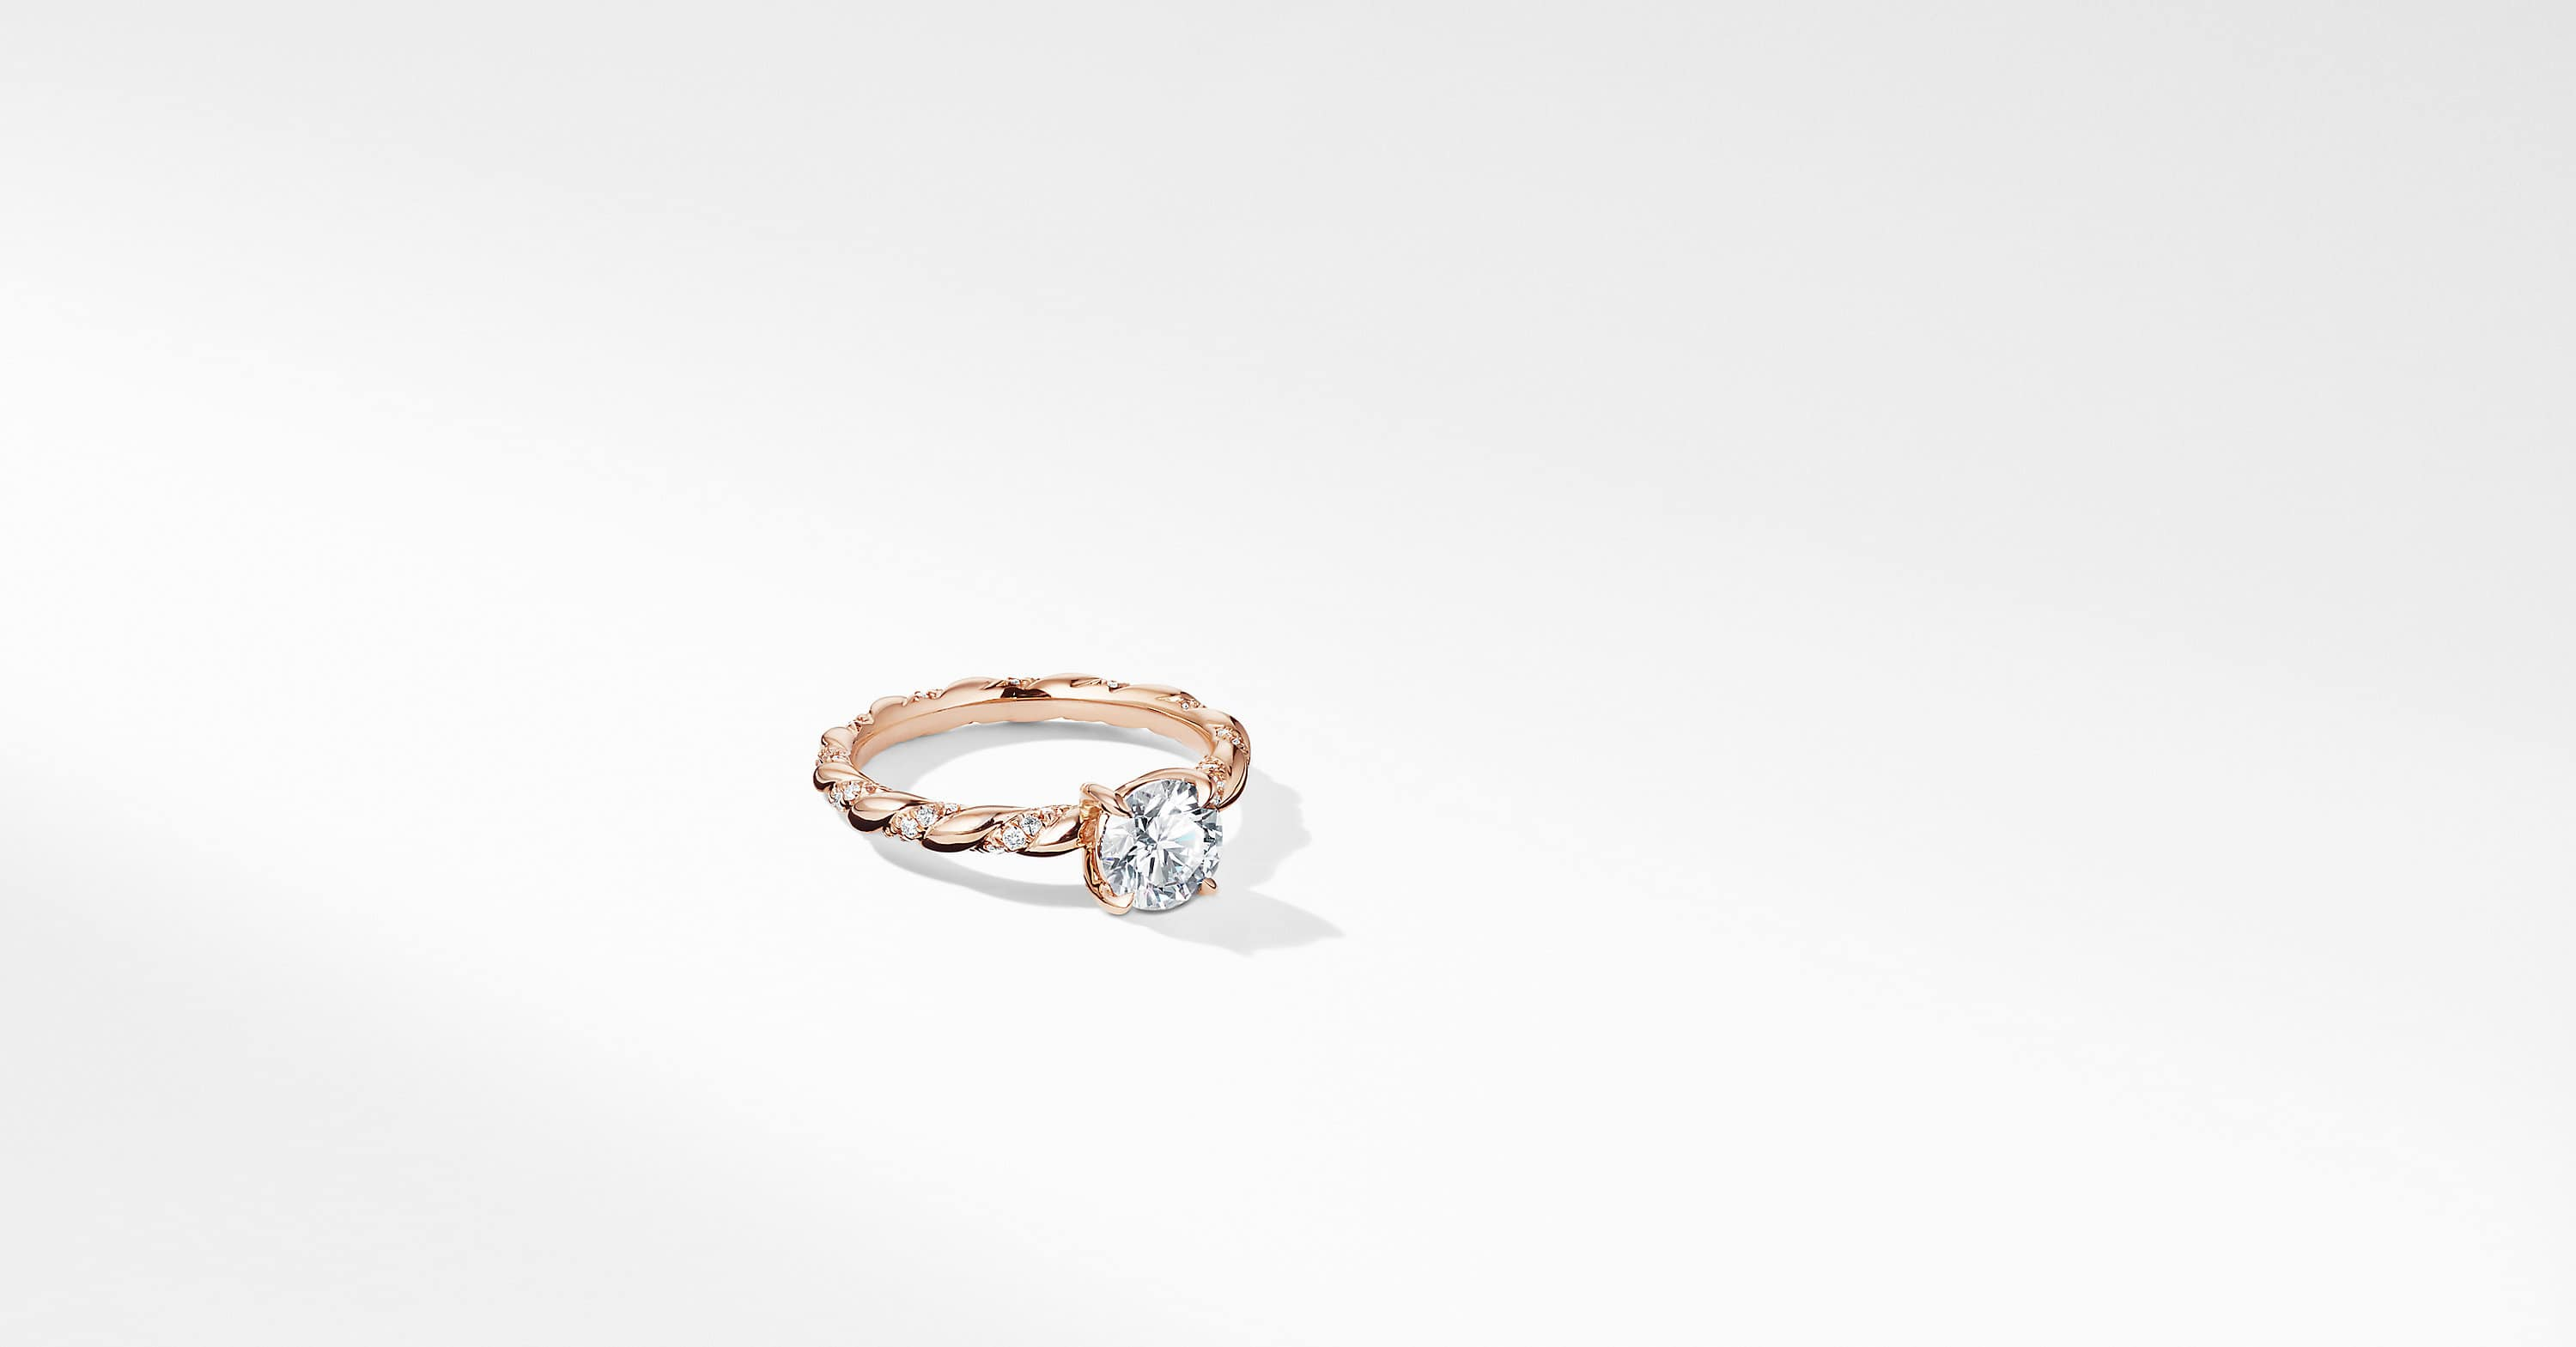 DY Unity Pave Engagement Ring in Rose Gold, Round